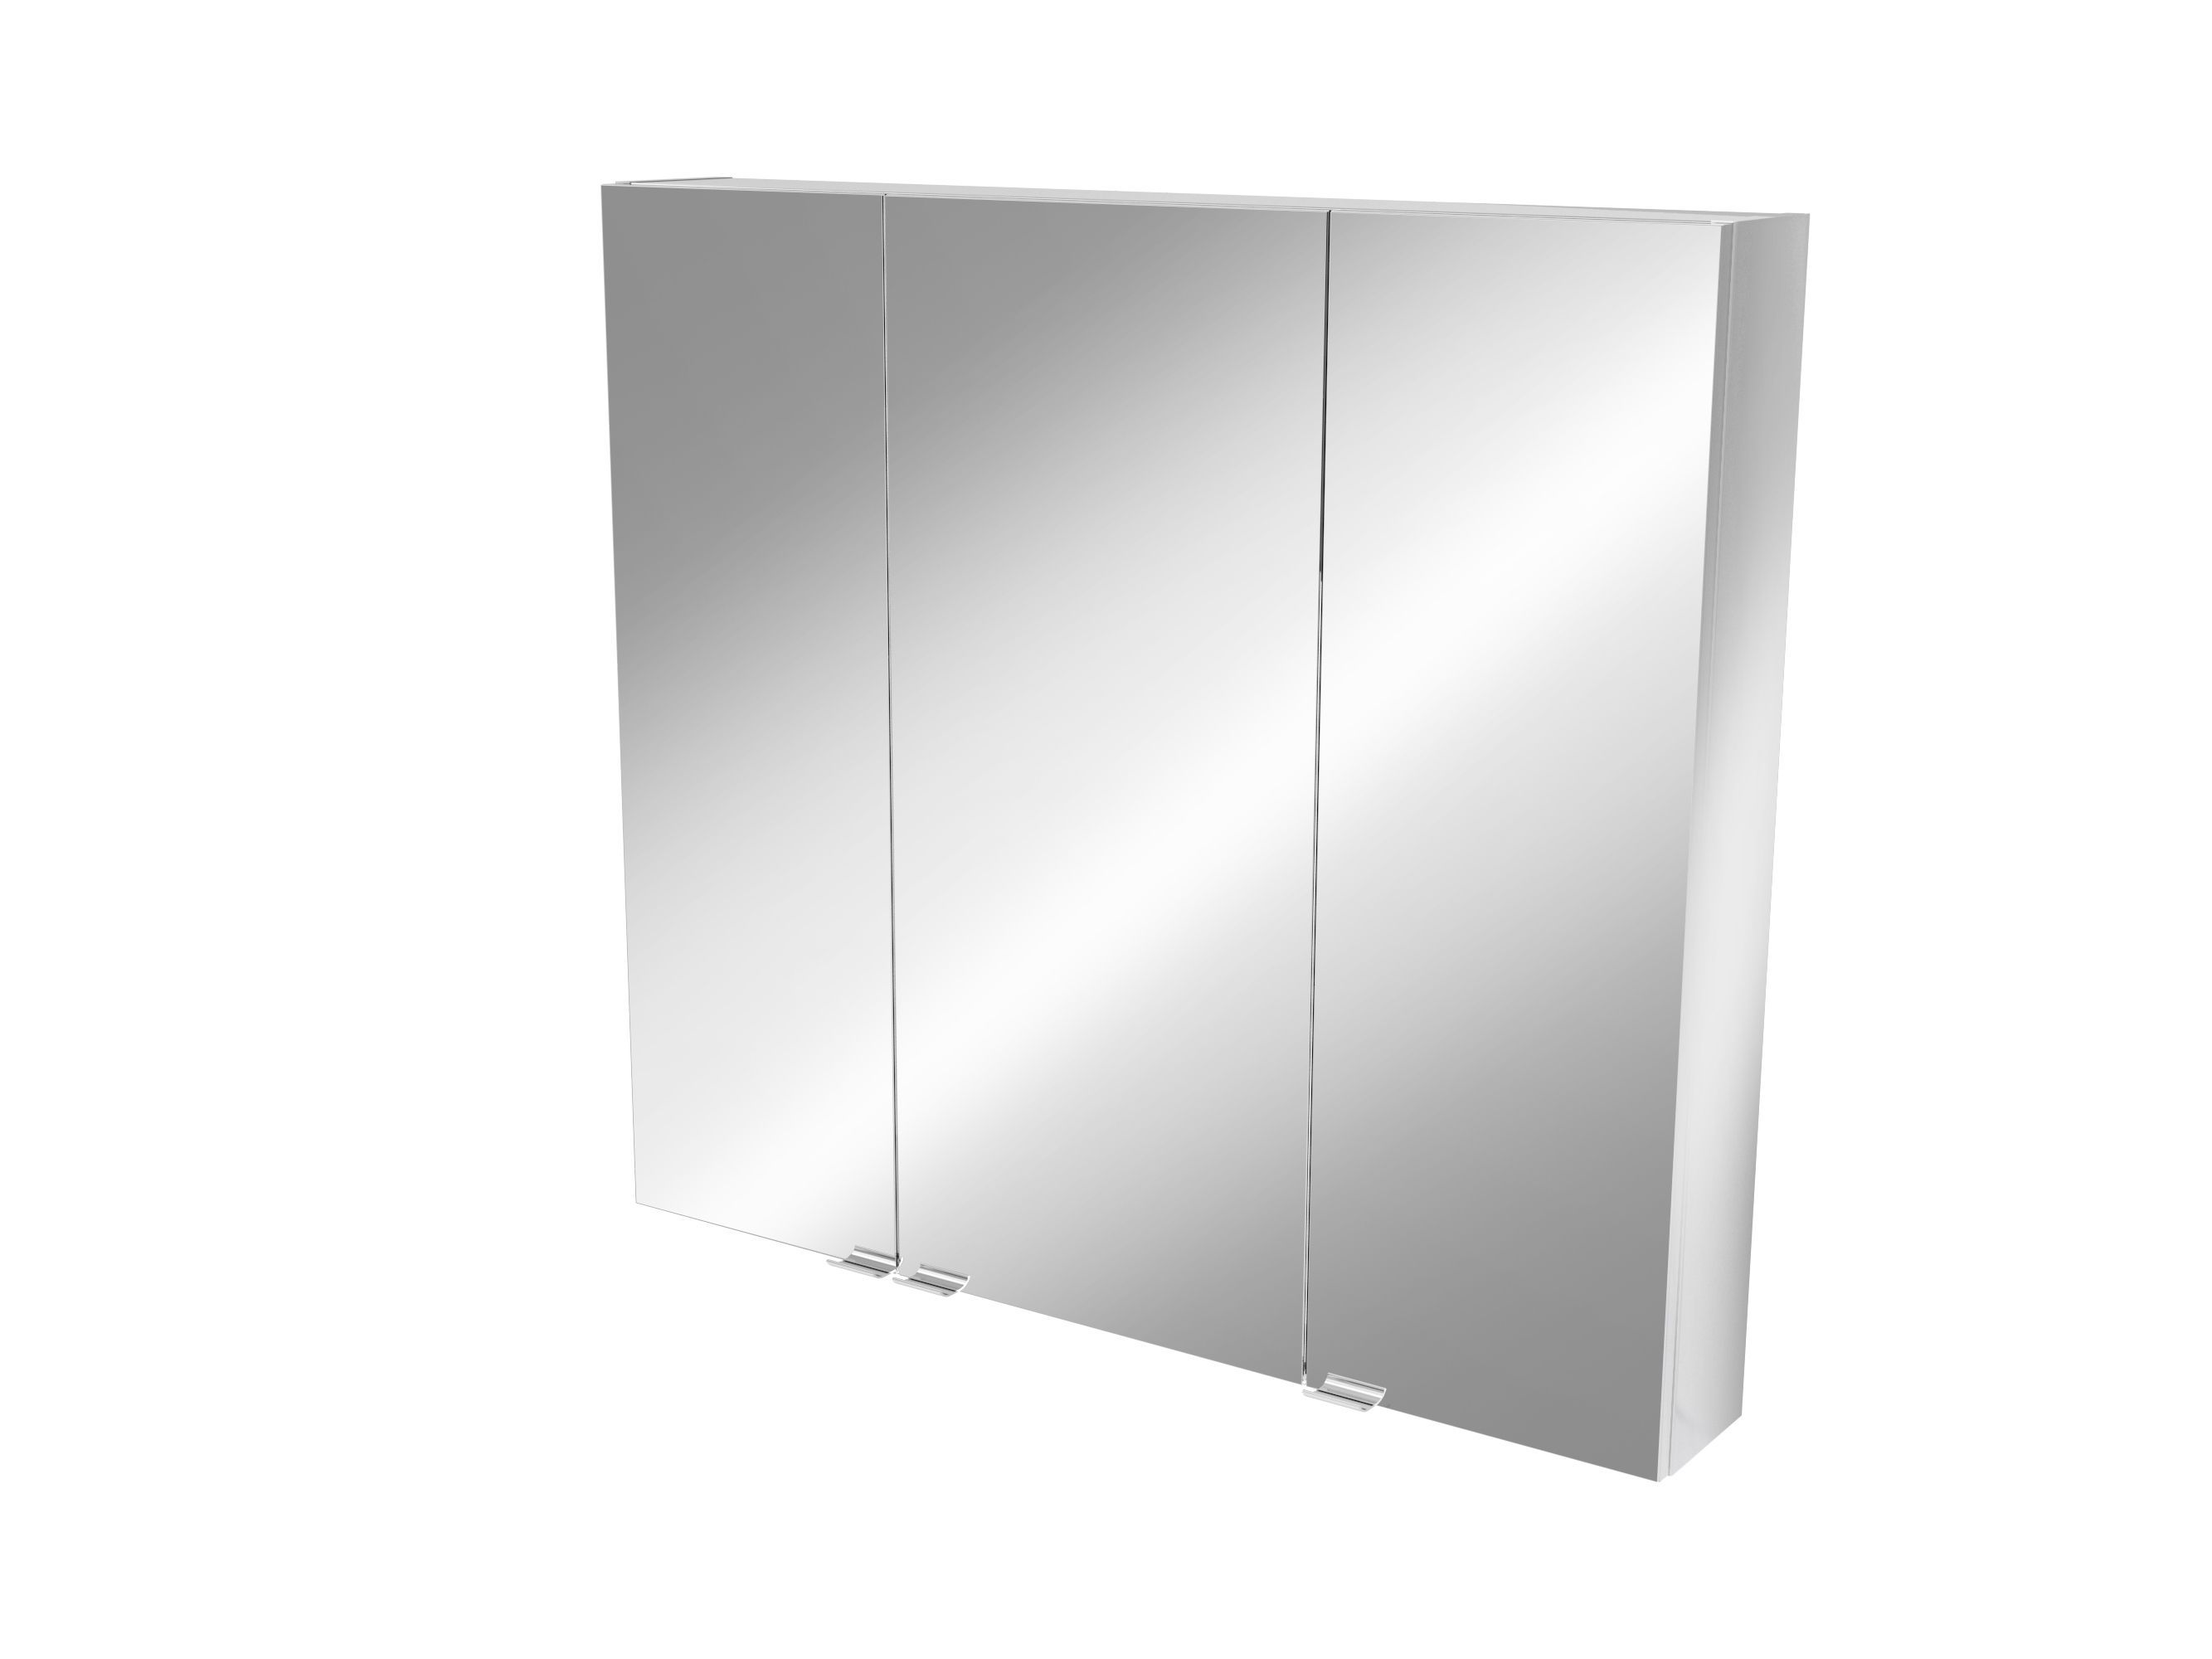 Cooke & Lewis Imandra Mirrored Wall Cabinet, (w)1000mm